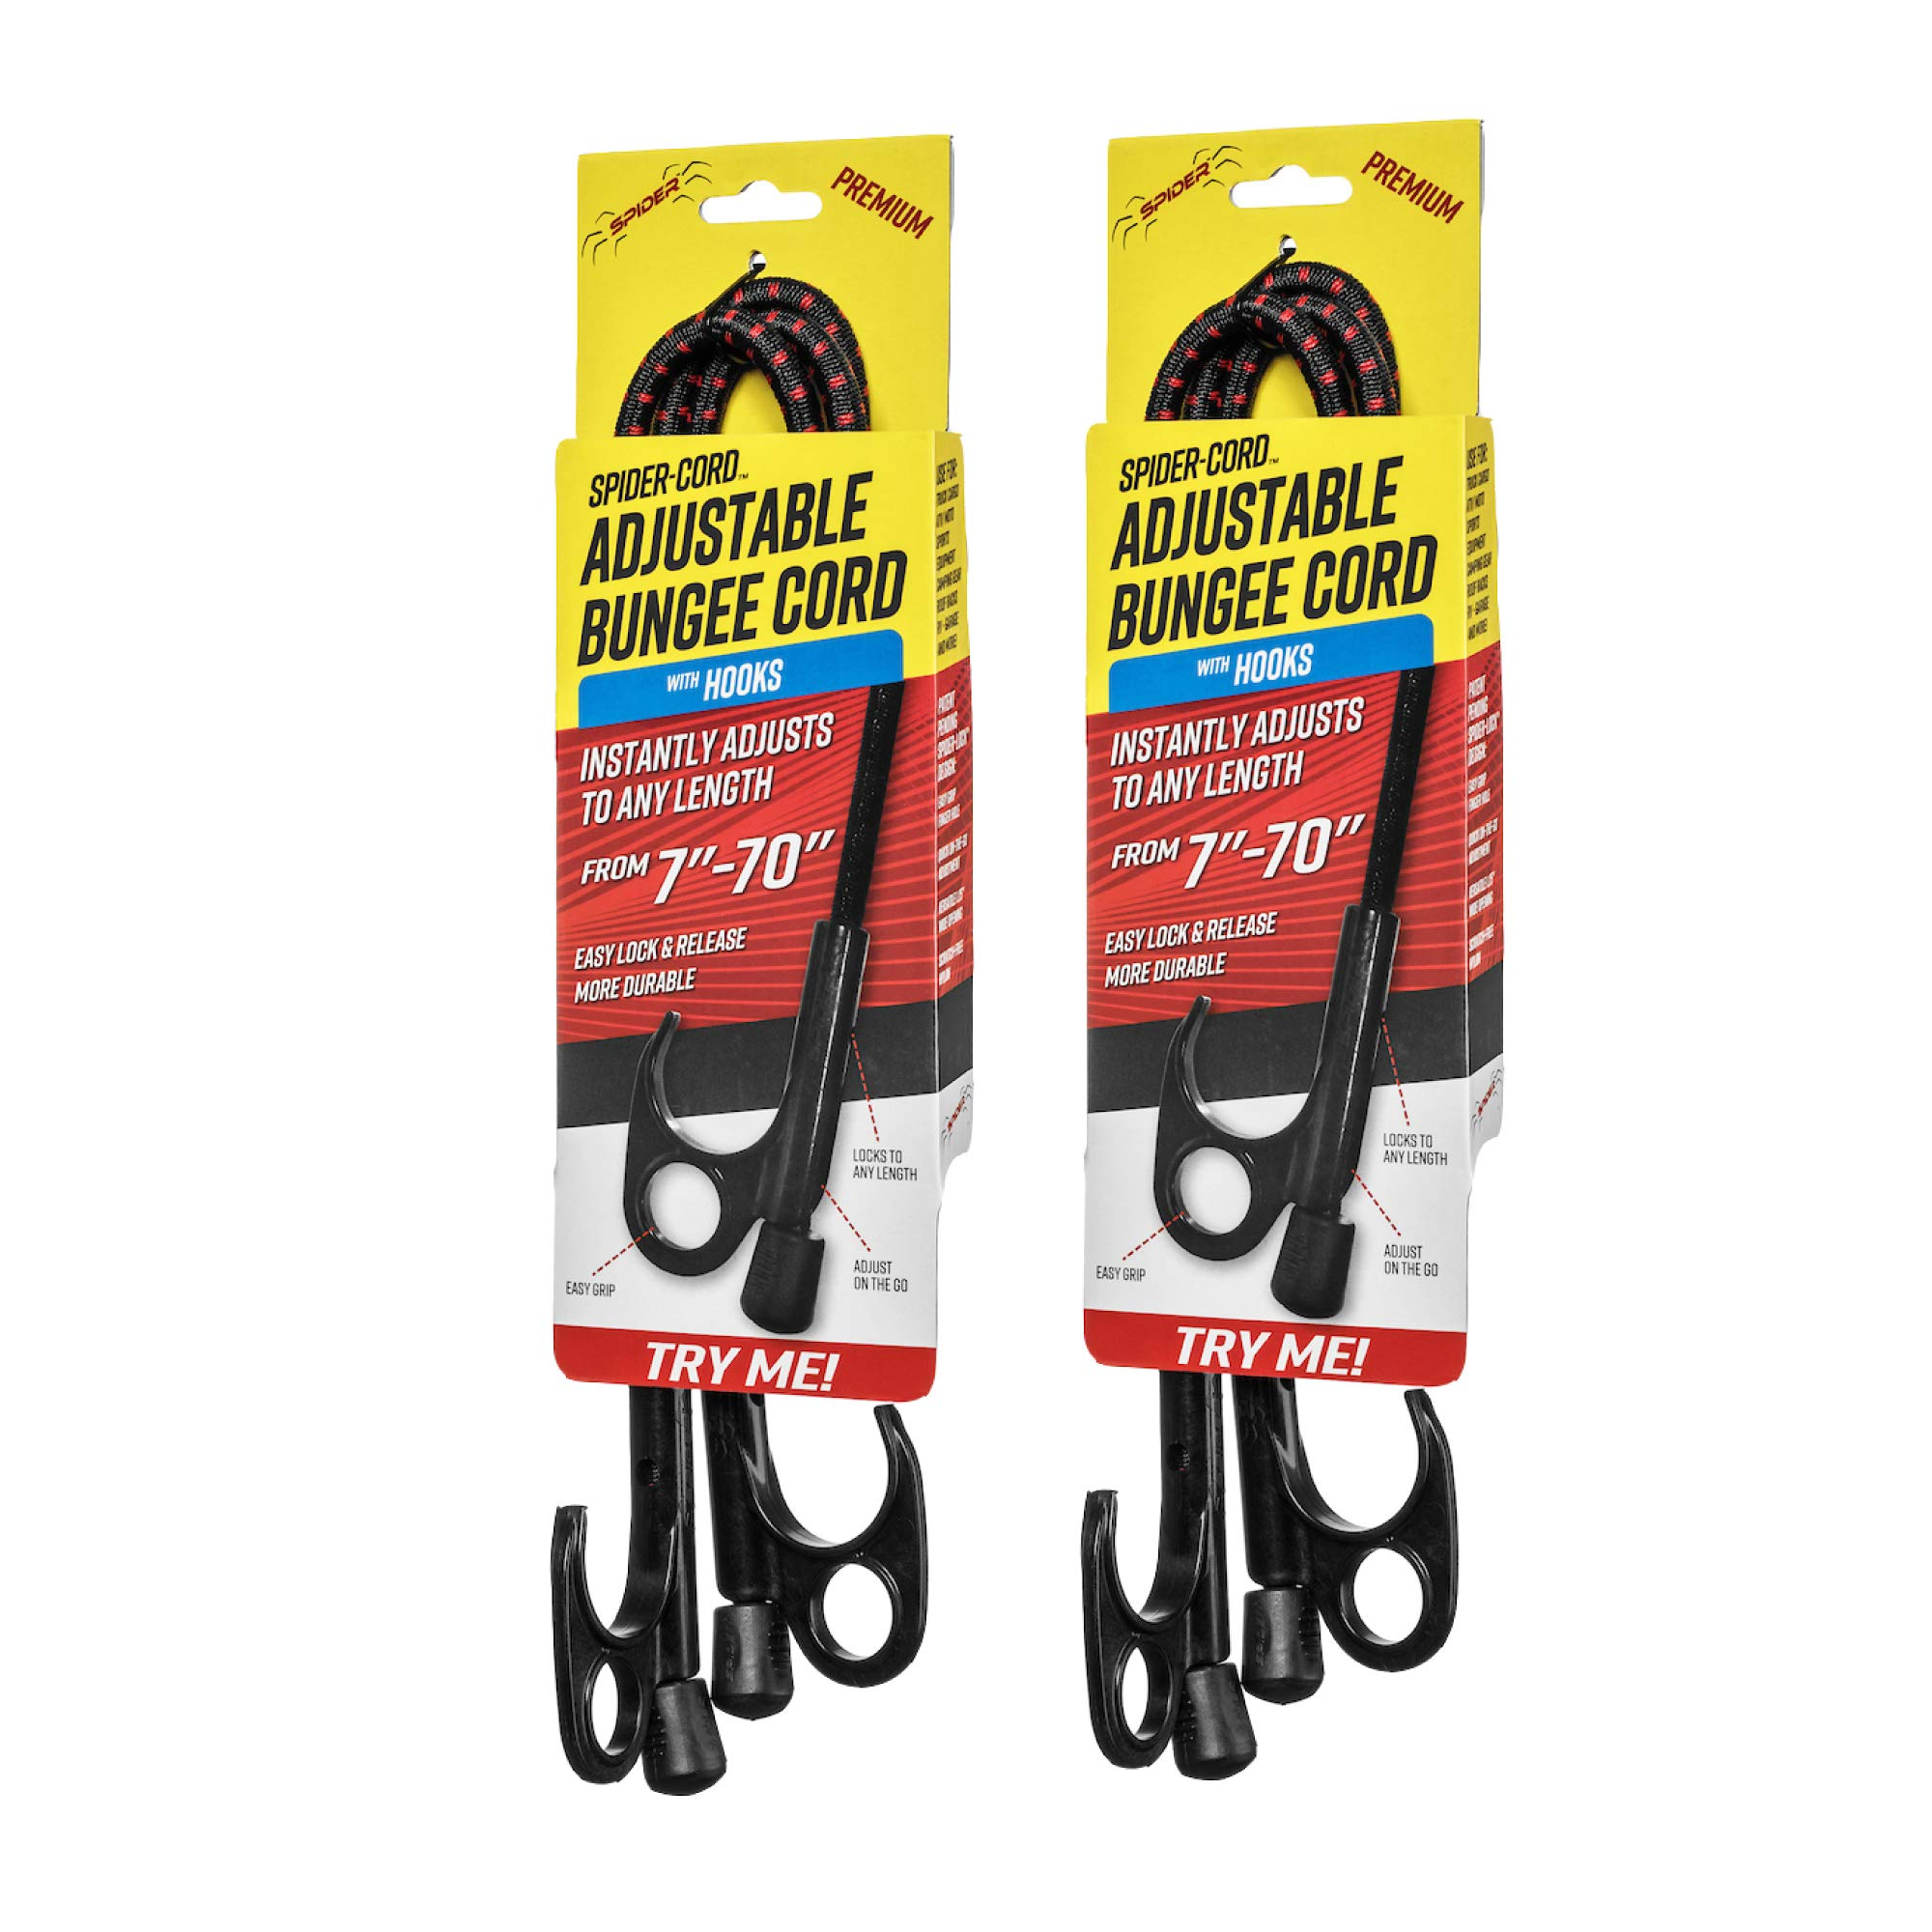 SPIDER Heavy-Duty Bungee Cords with Adjustable & Locking Length, Patent Pending, Tie-Down, with Hooks Only, 2-Pack by SPIDER